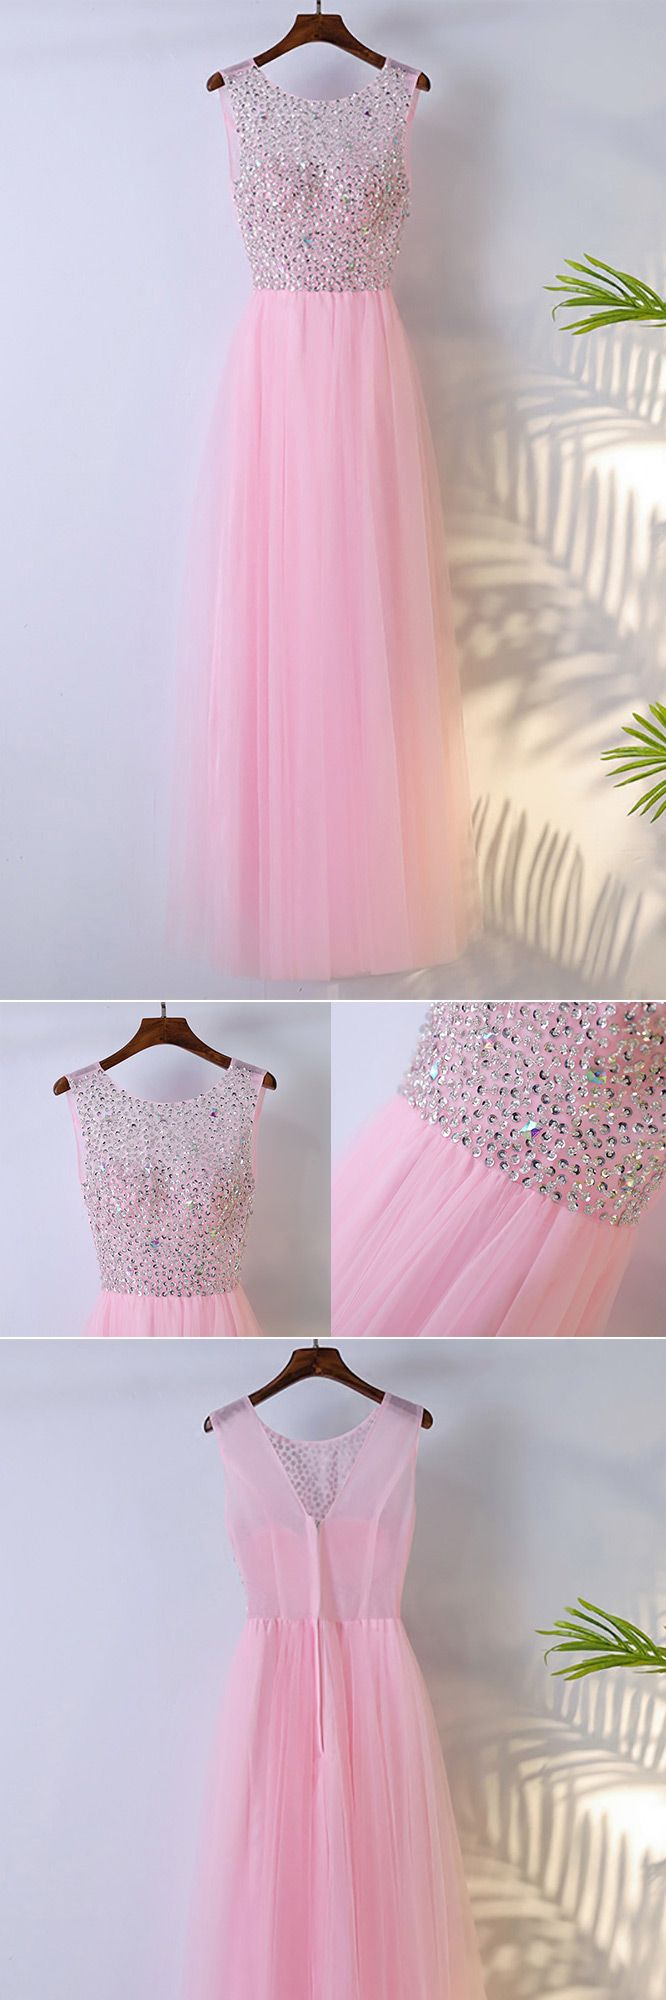 Cute Pink Long Sleeveless Prom Dress With Bling Sequins - $109 ...